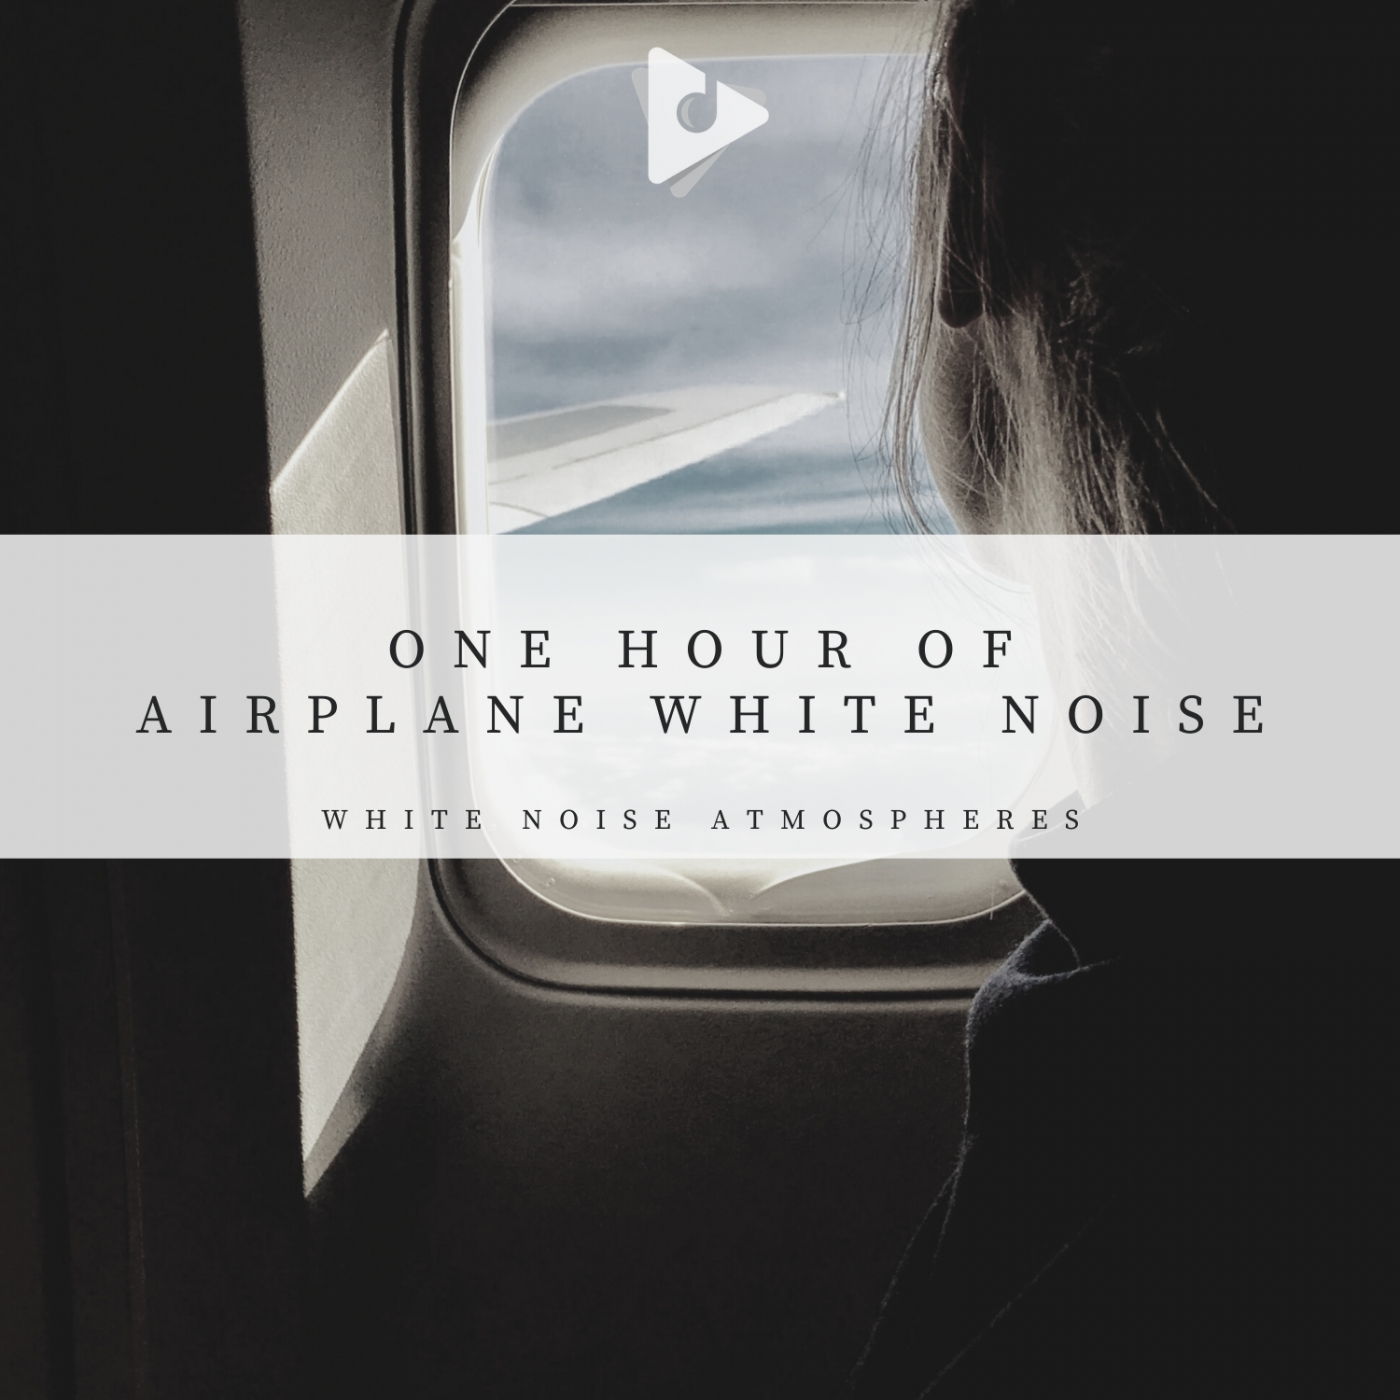 1 Hour of Airplane White Noise